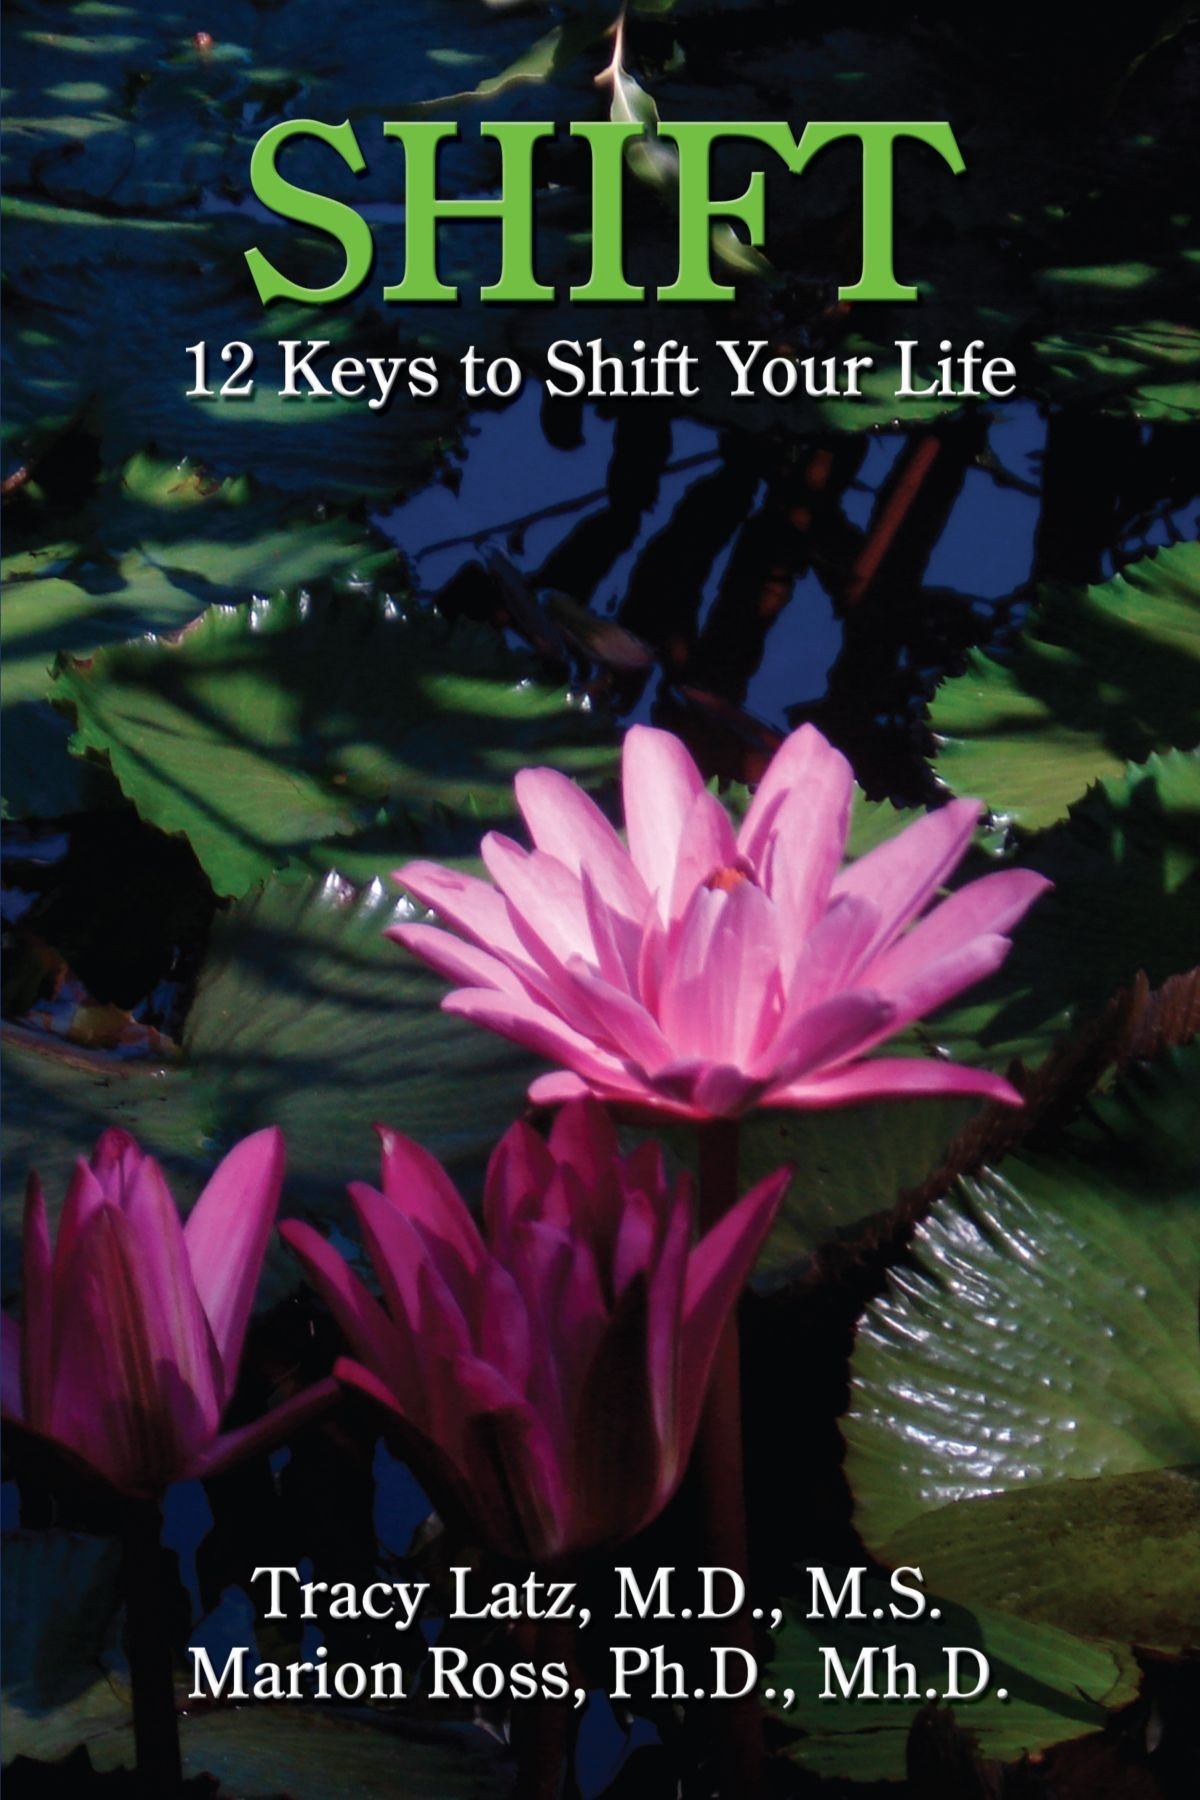 Download Shift: 12 Keys to Shift Your Life Text fb2 ebook